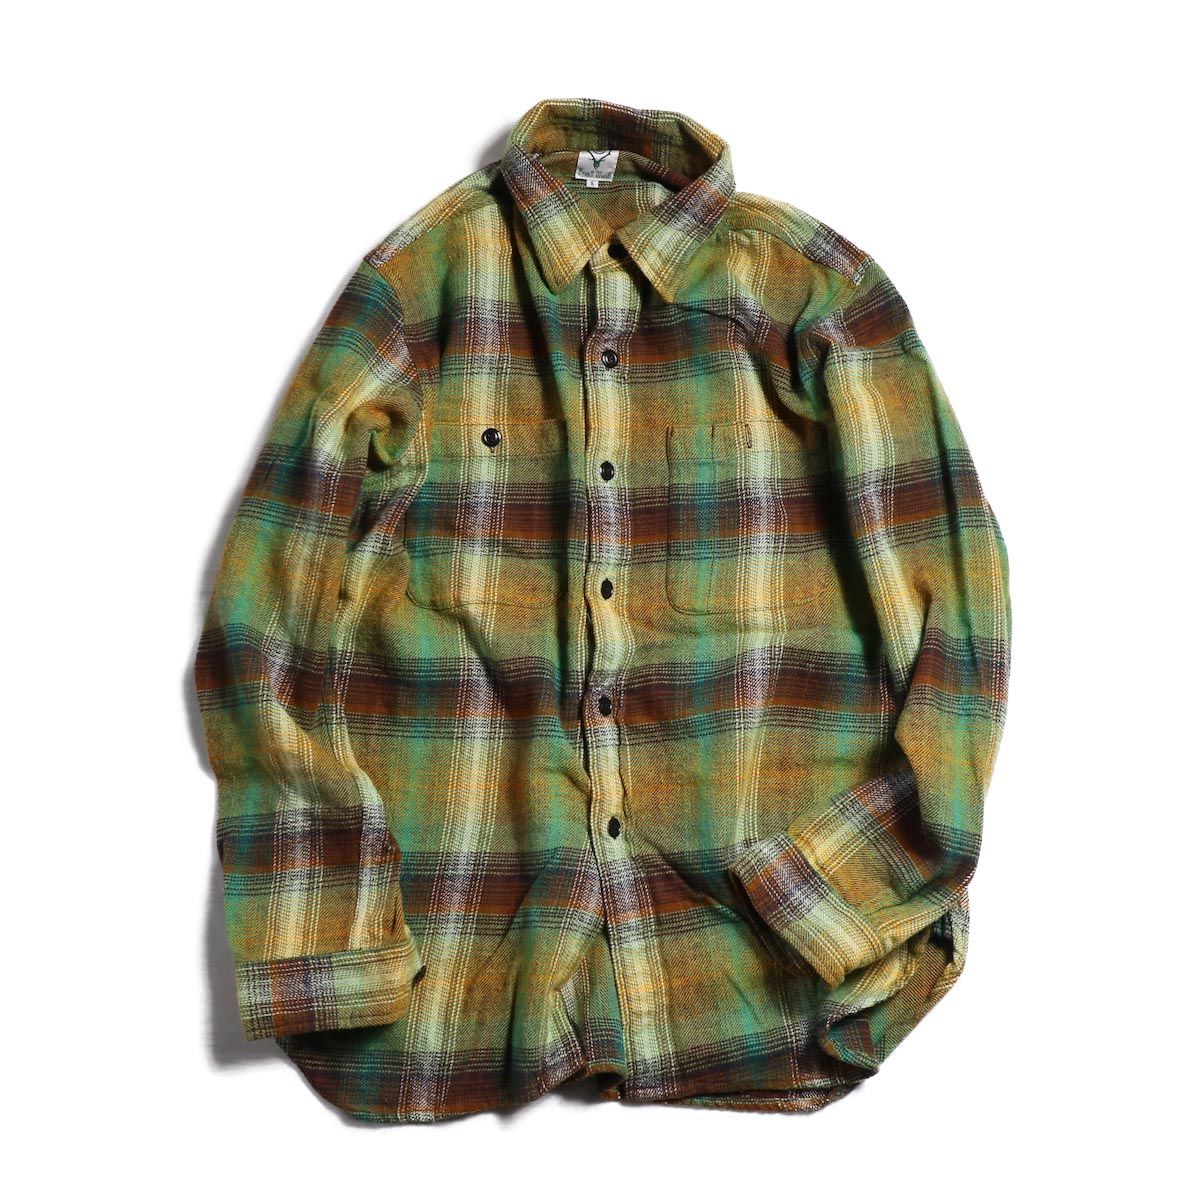 SOUTH2 WEST8 / Work Shirt Cotton Twill/Plaid -OLIVE